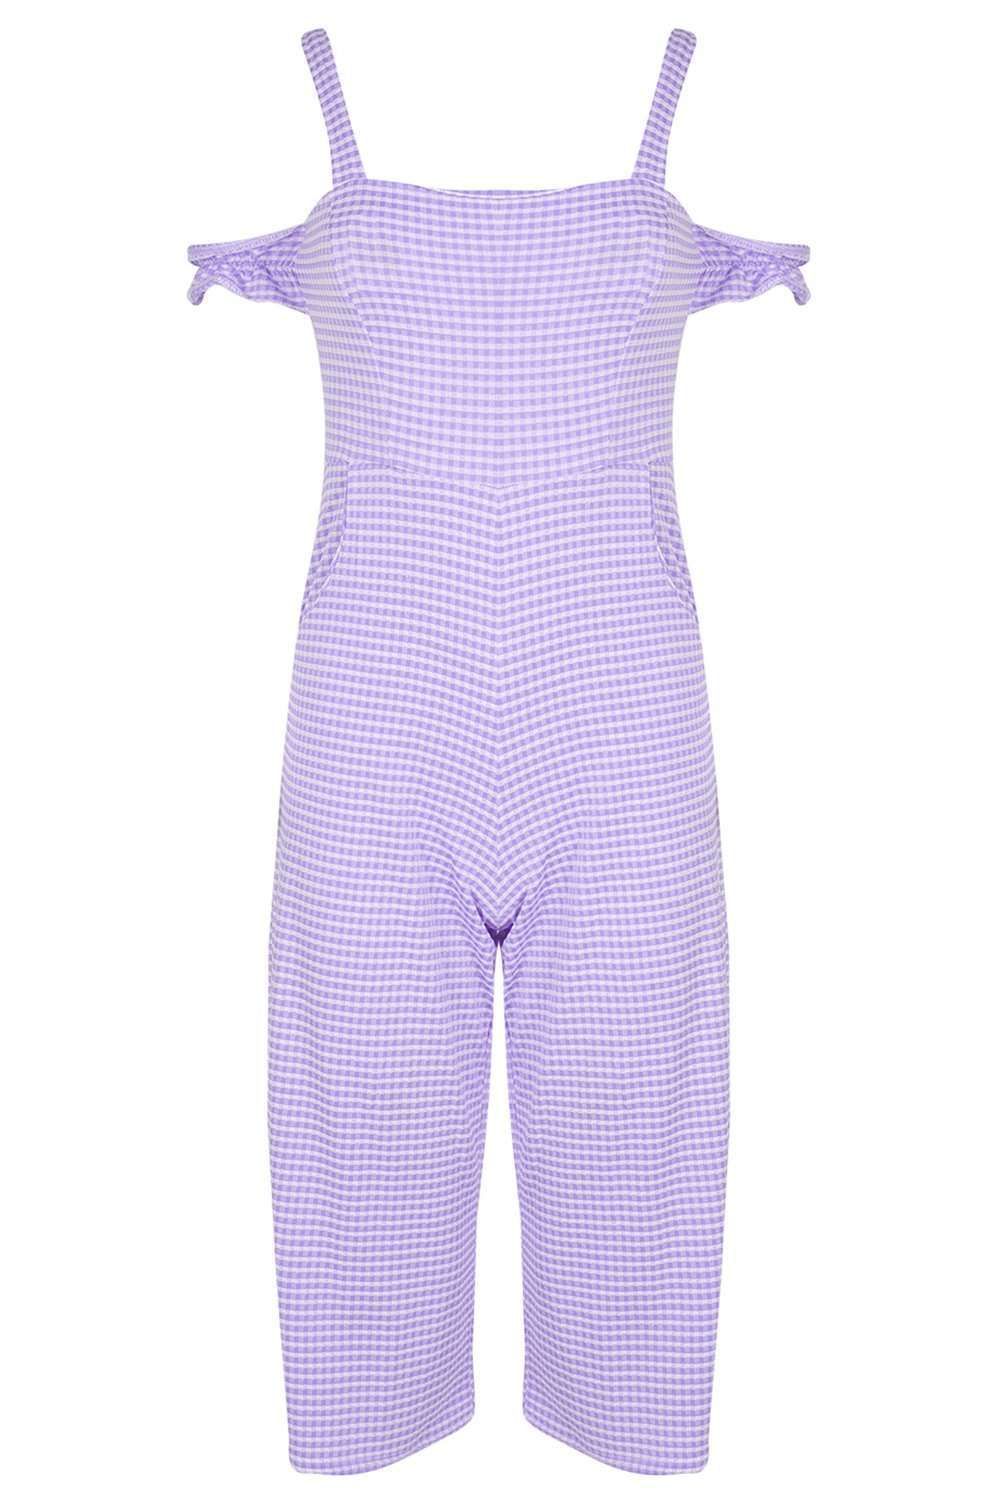 Heidi Cold Shoulder Gingham Jumpsuit - bejealous-com